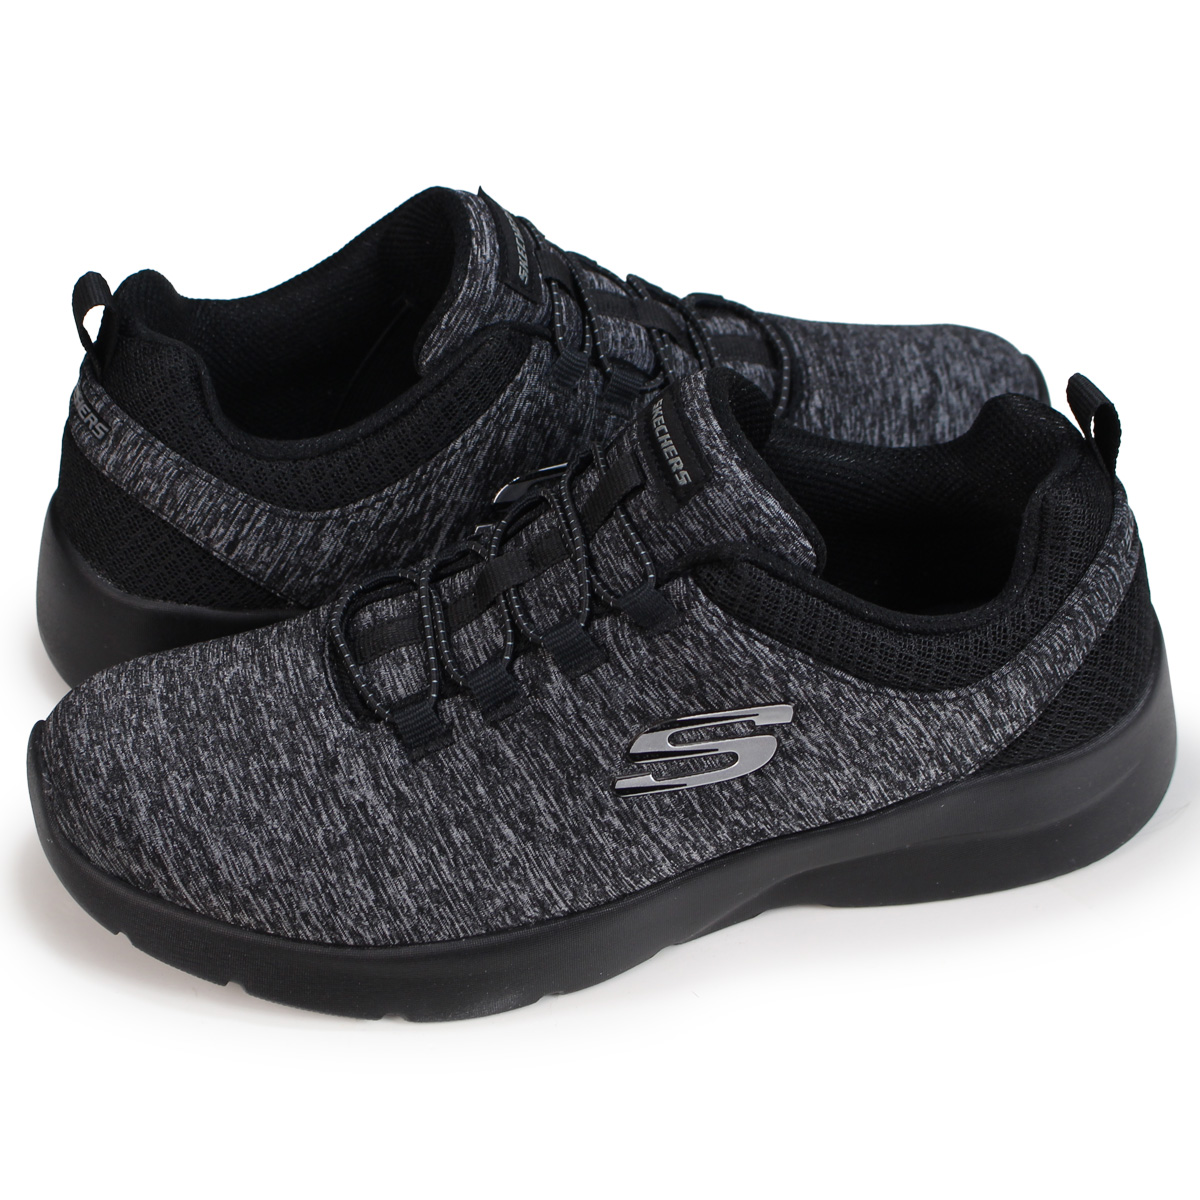 SKECHERS DYNAMIGHT 2.0 IN A FLAS スケッチャーズダイナマイト 2.0 Lady's sneakers 12965 black